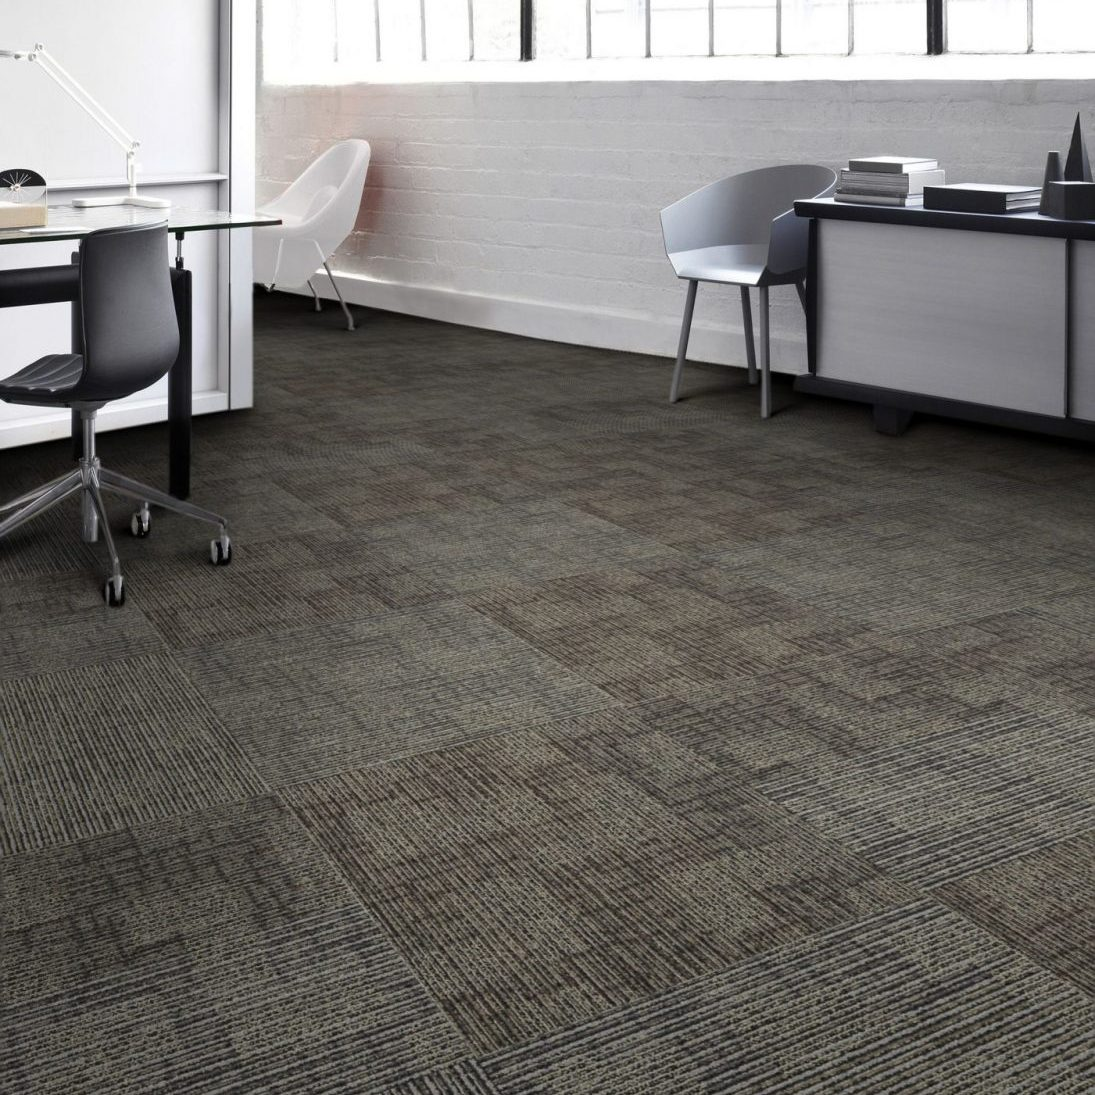 carpet tile in office